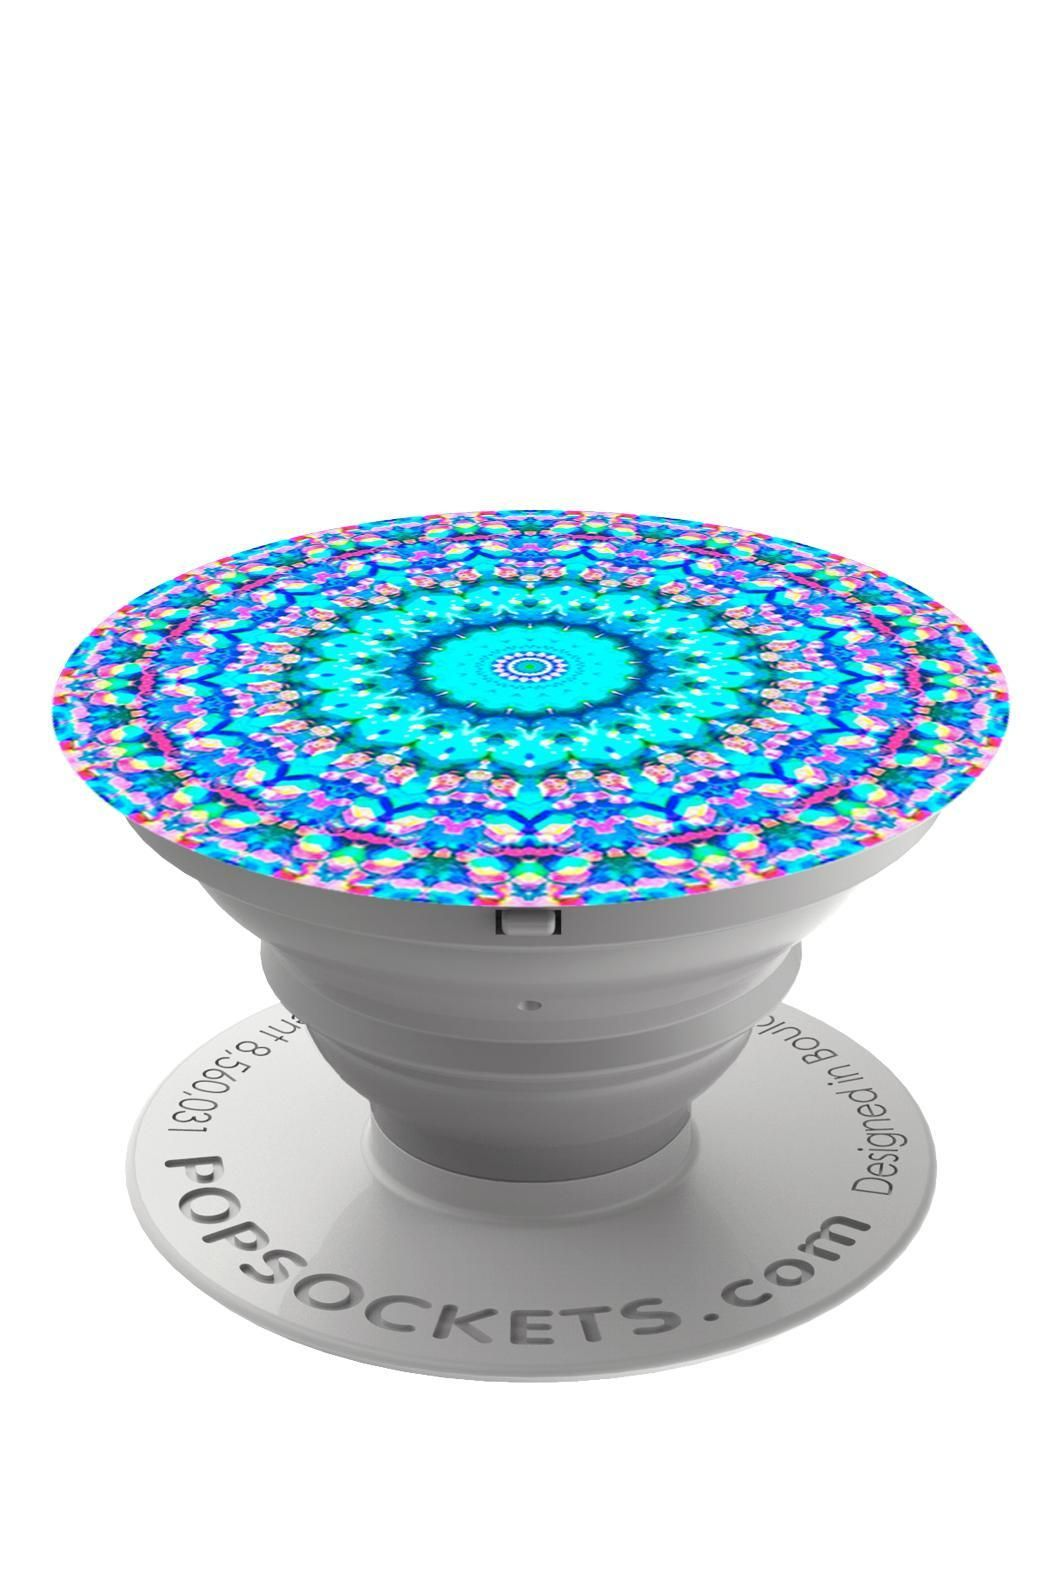 571116f3f7bc83 Popsockets Arabesque design is a blue mandala pattern. PopSockets not only  make terrific phone grips and phone stands they also make holding tablets  and ...